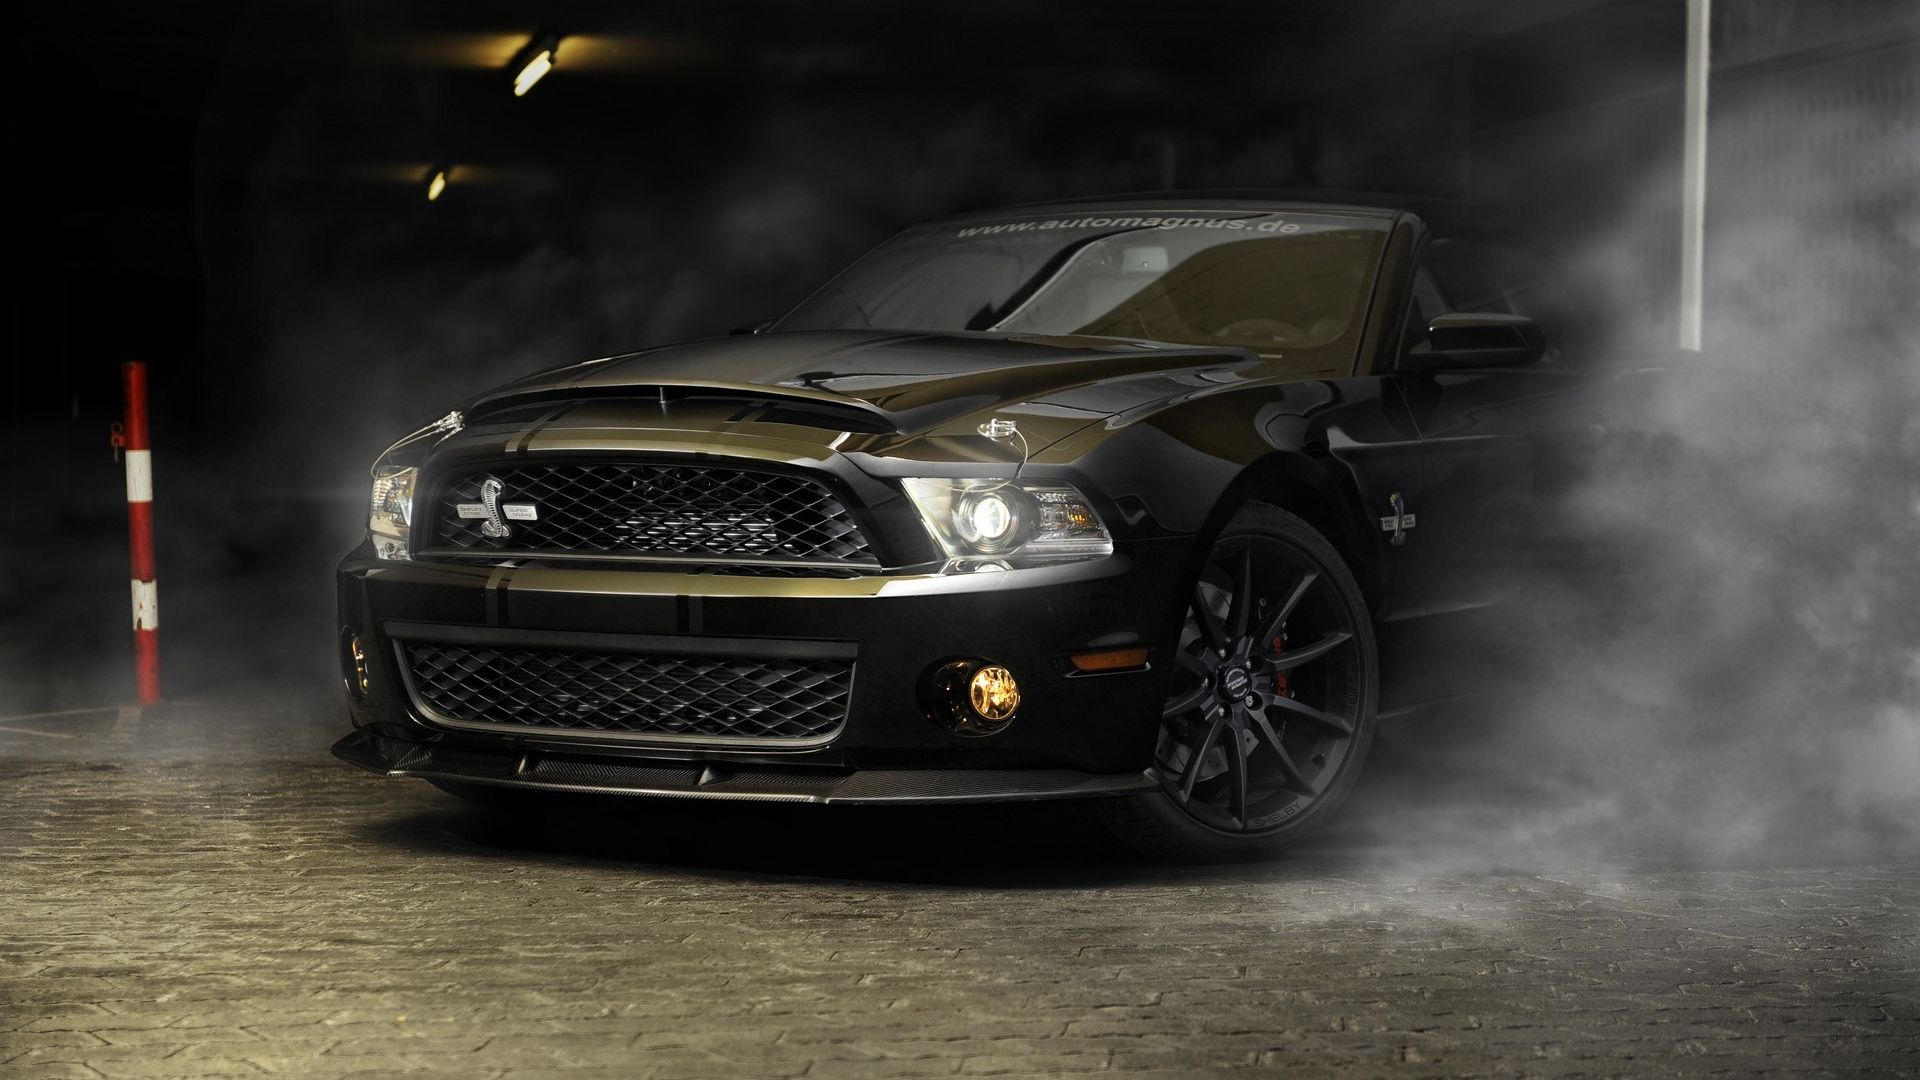 Shelby Cobra Mustangs Google Search Mustang Wallpaper Ford Mustang Shelby Gt500 Mustang Shelby